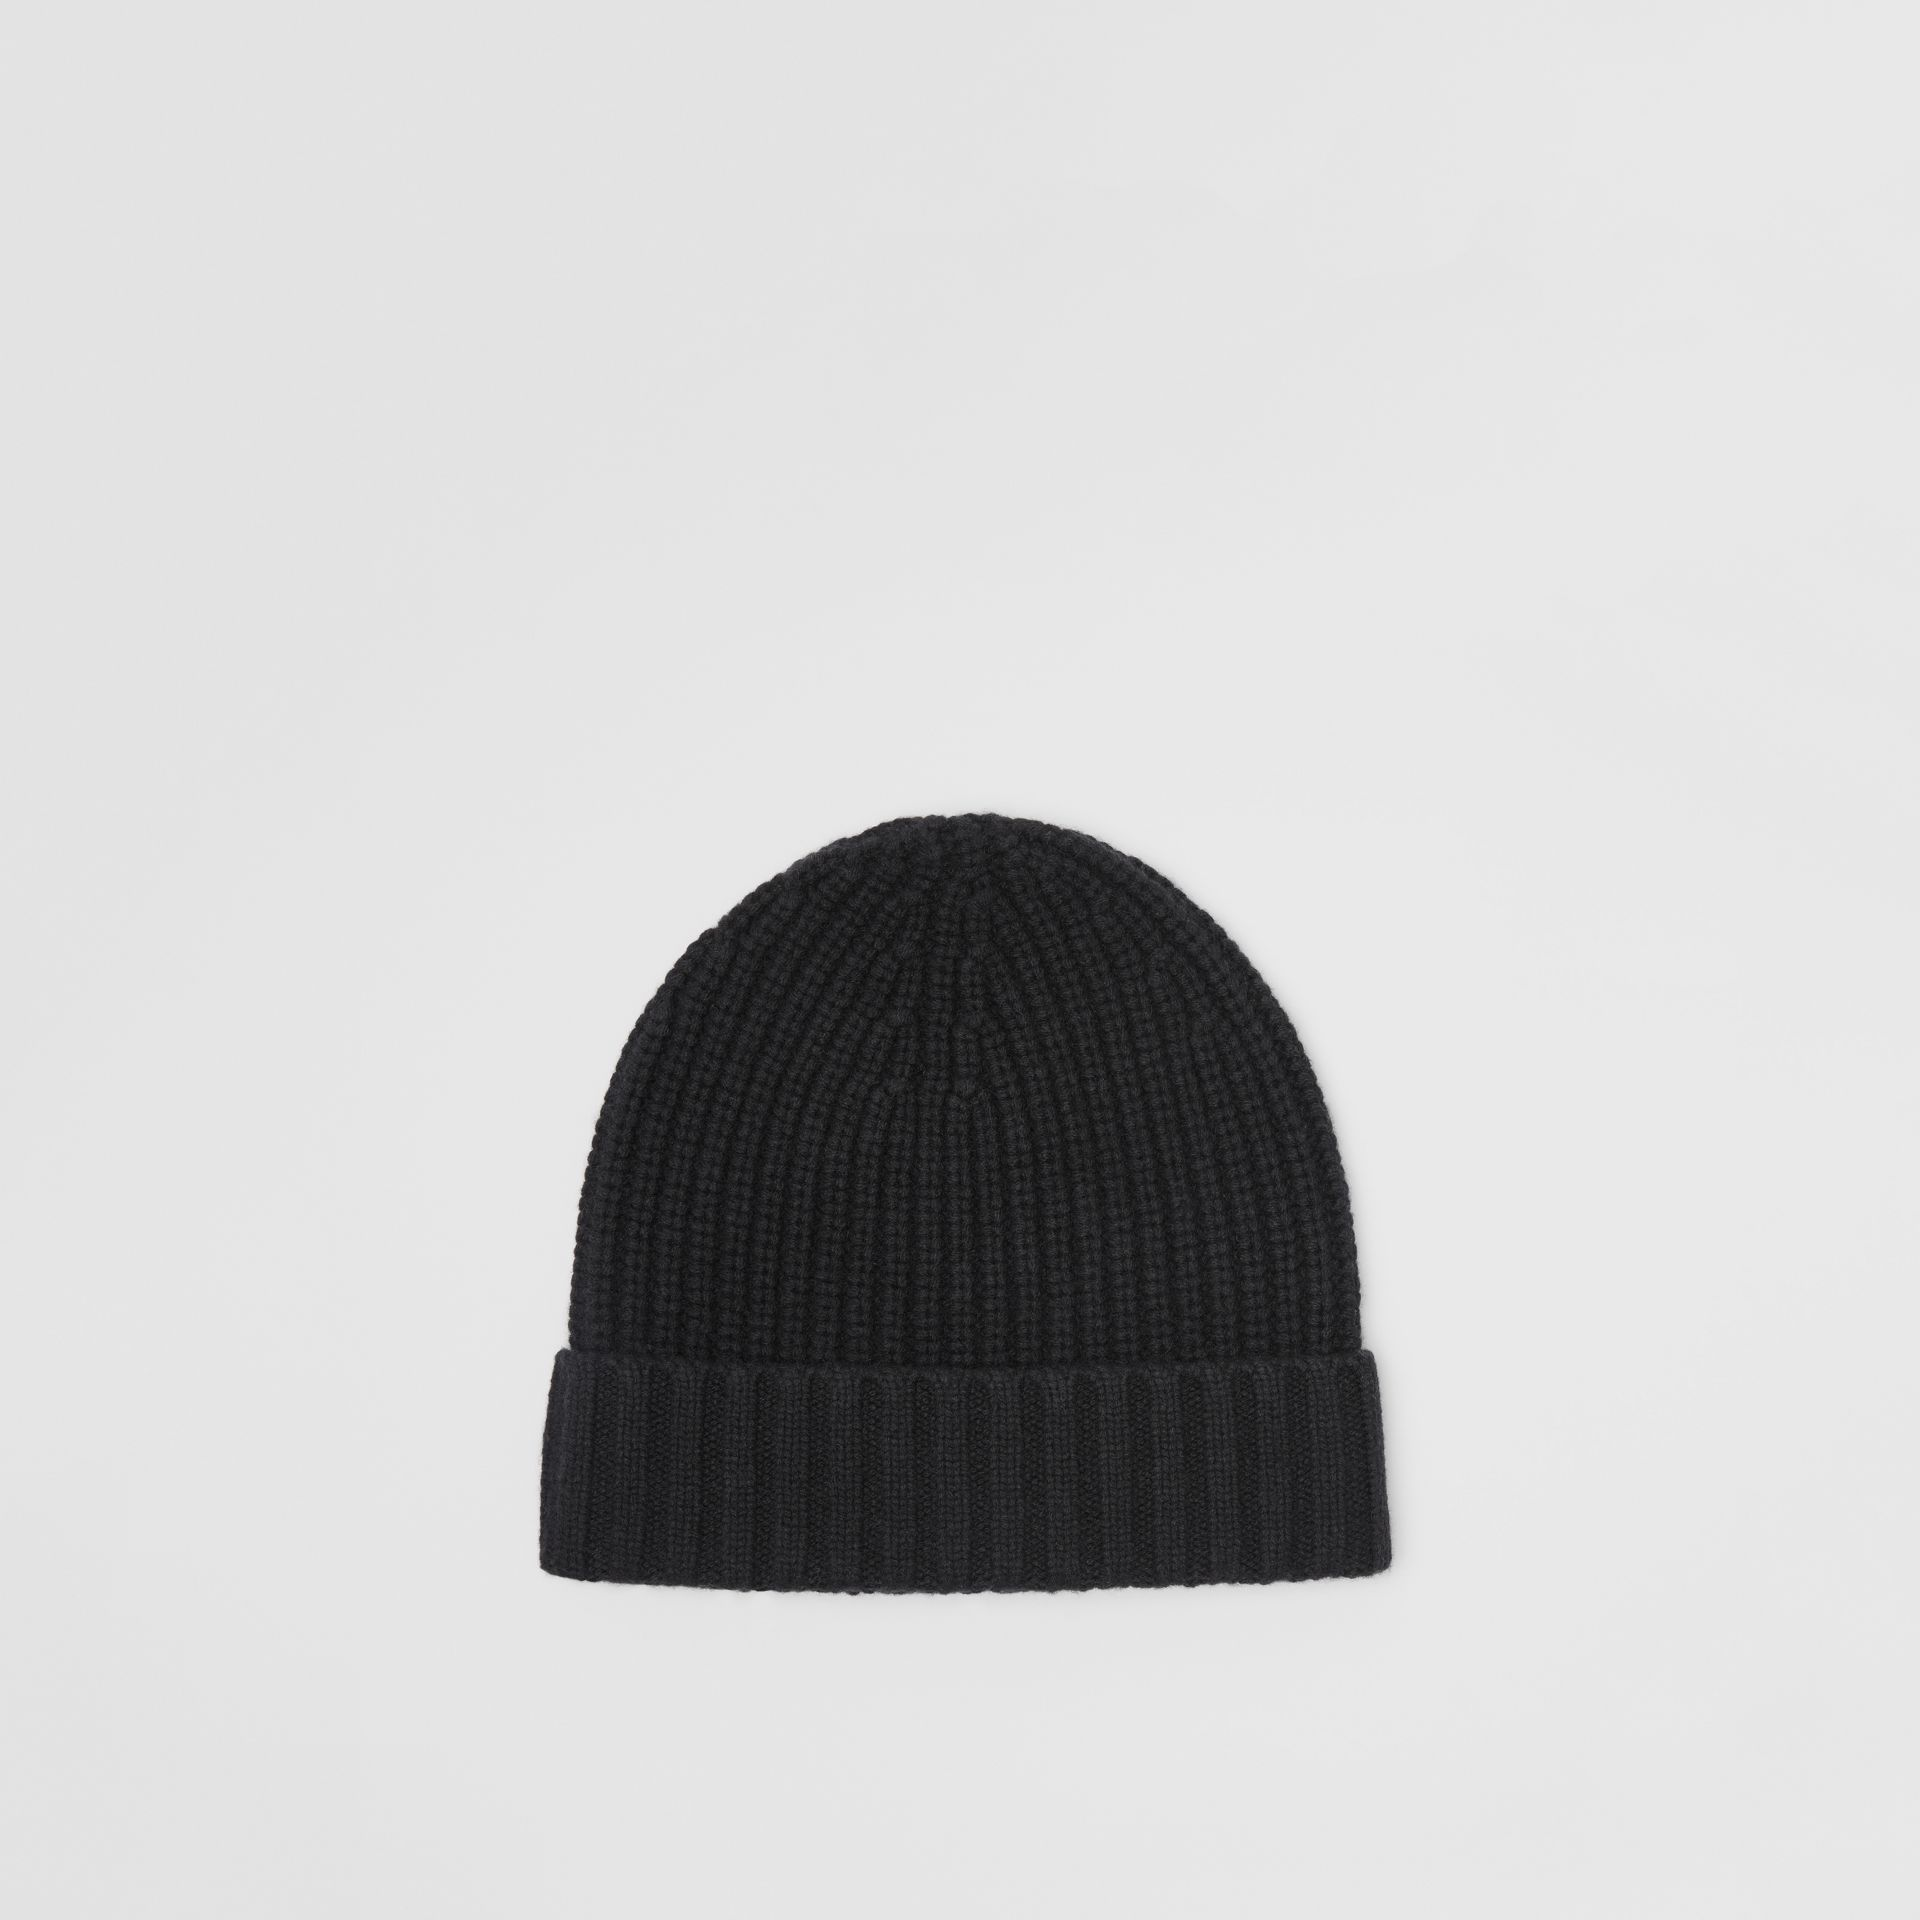 Embroidered Crest Rib Knit Wool Cashmere Beanie in Black | Burberry United States - gallery image 4